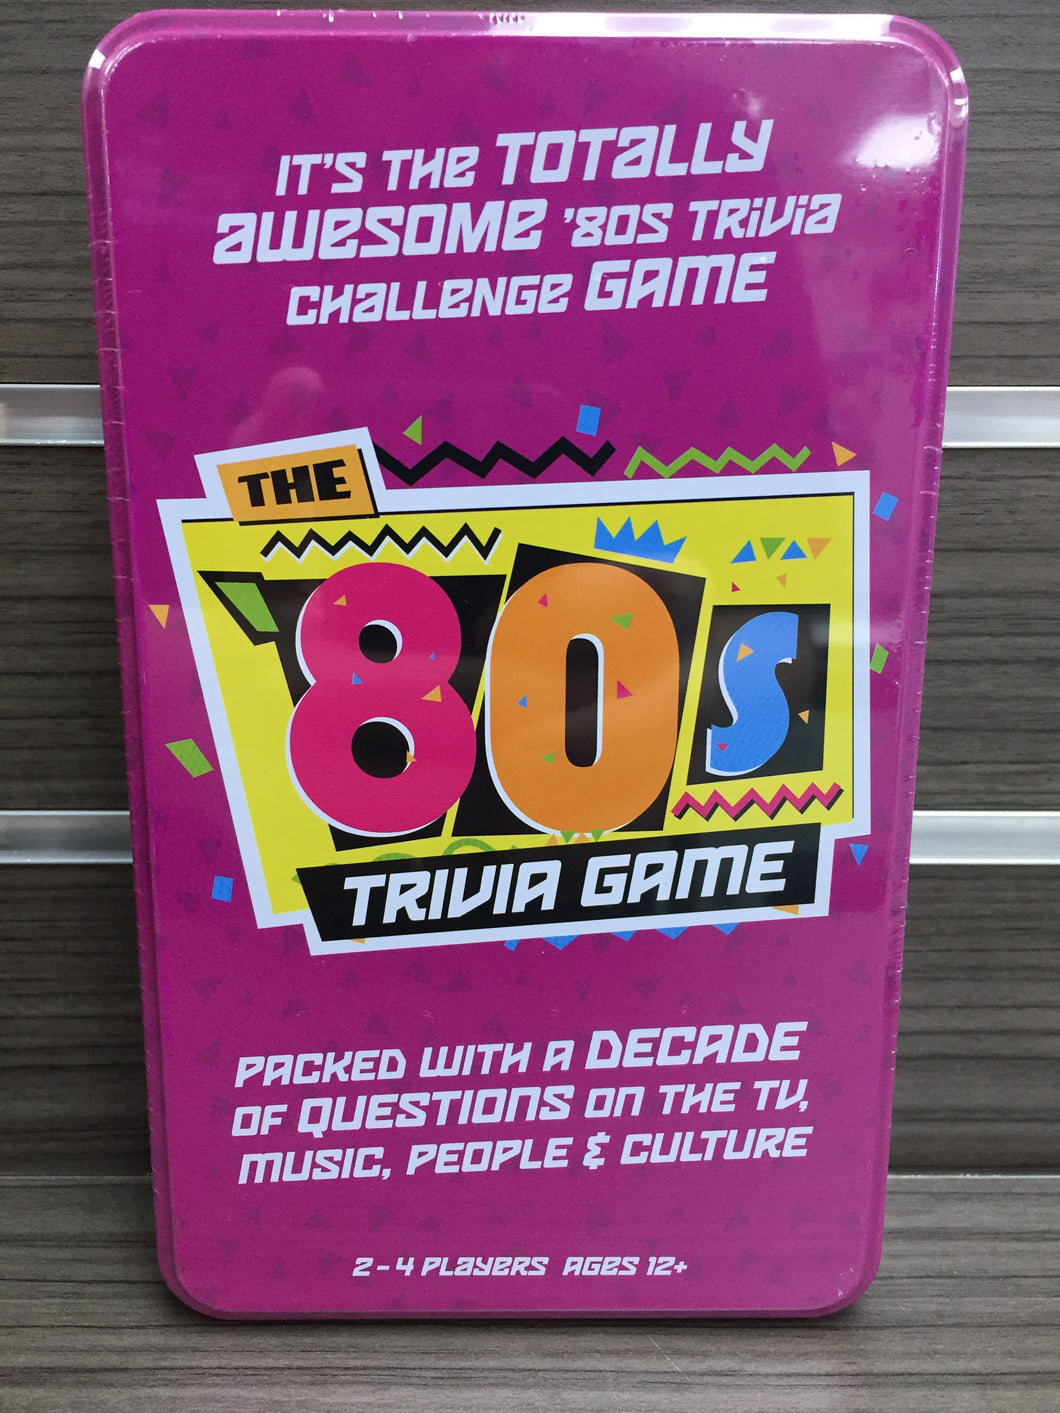 The 80s Trivia Game